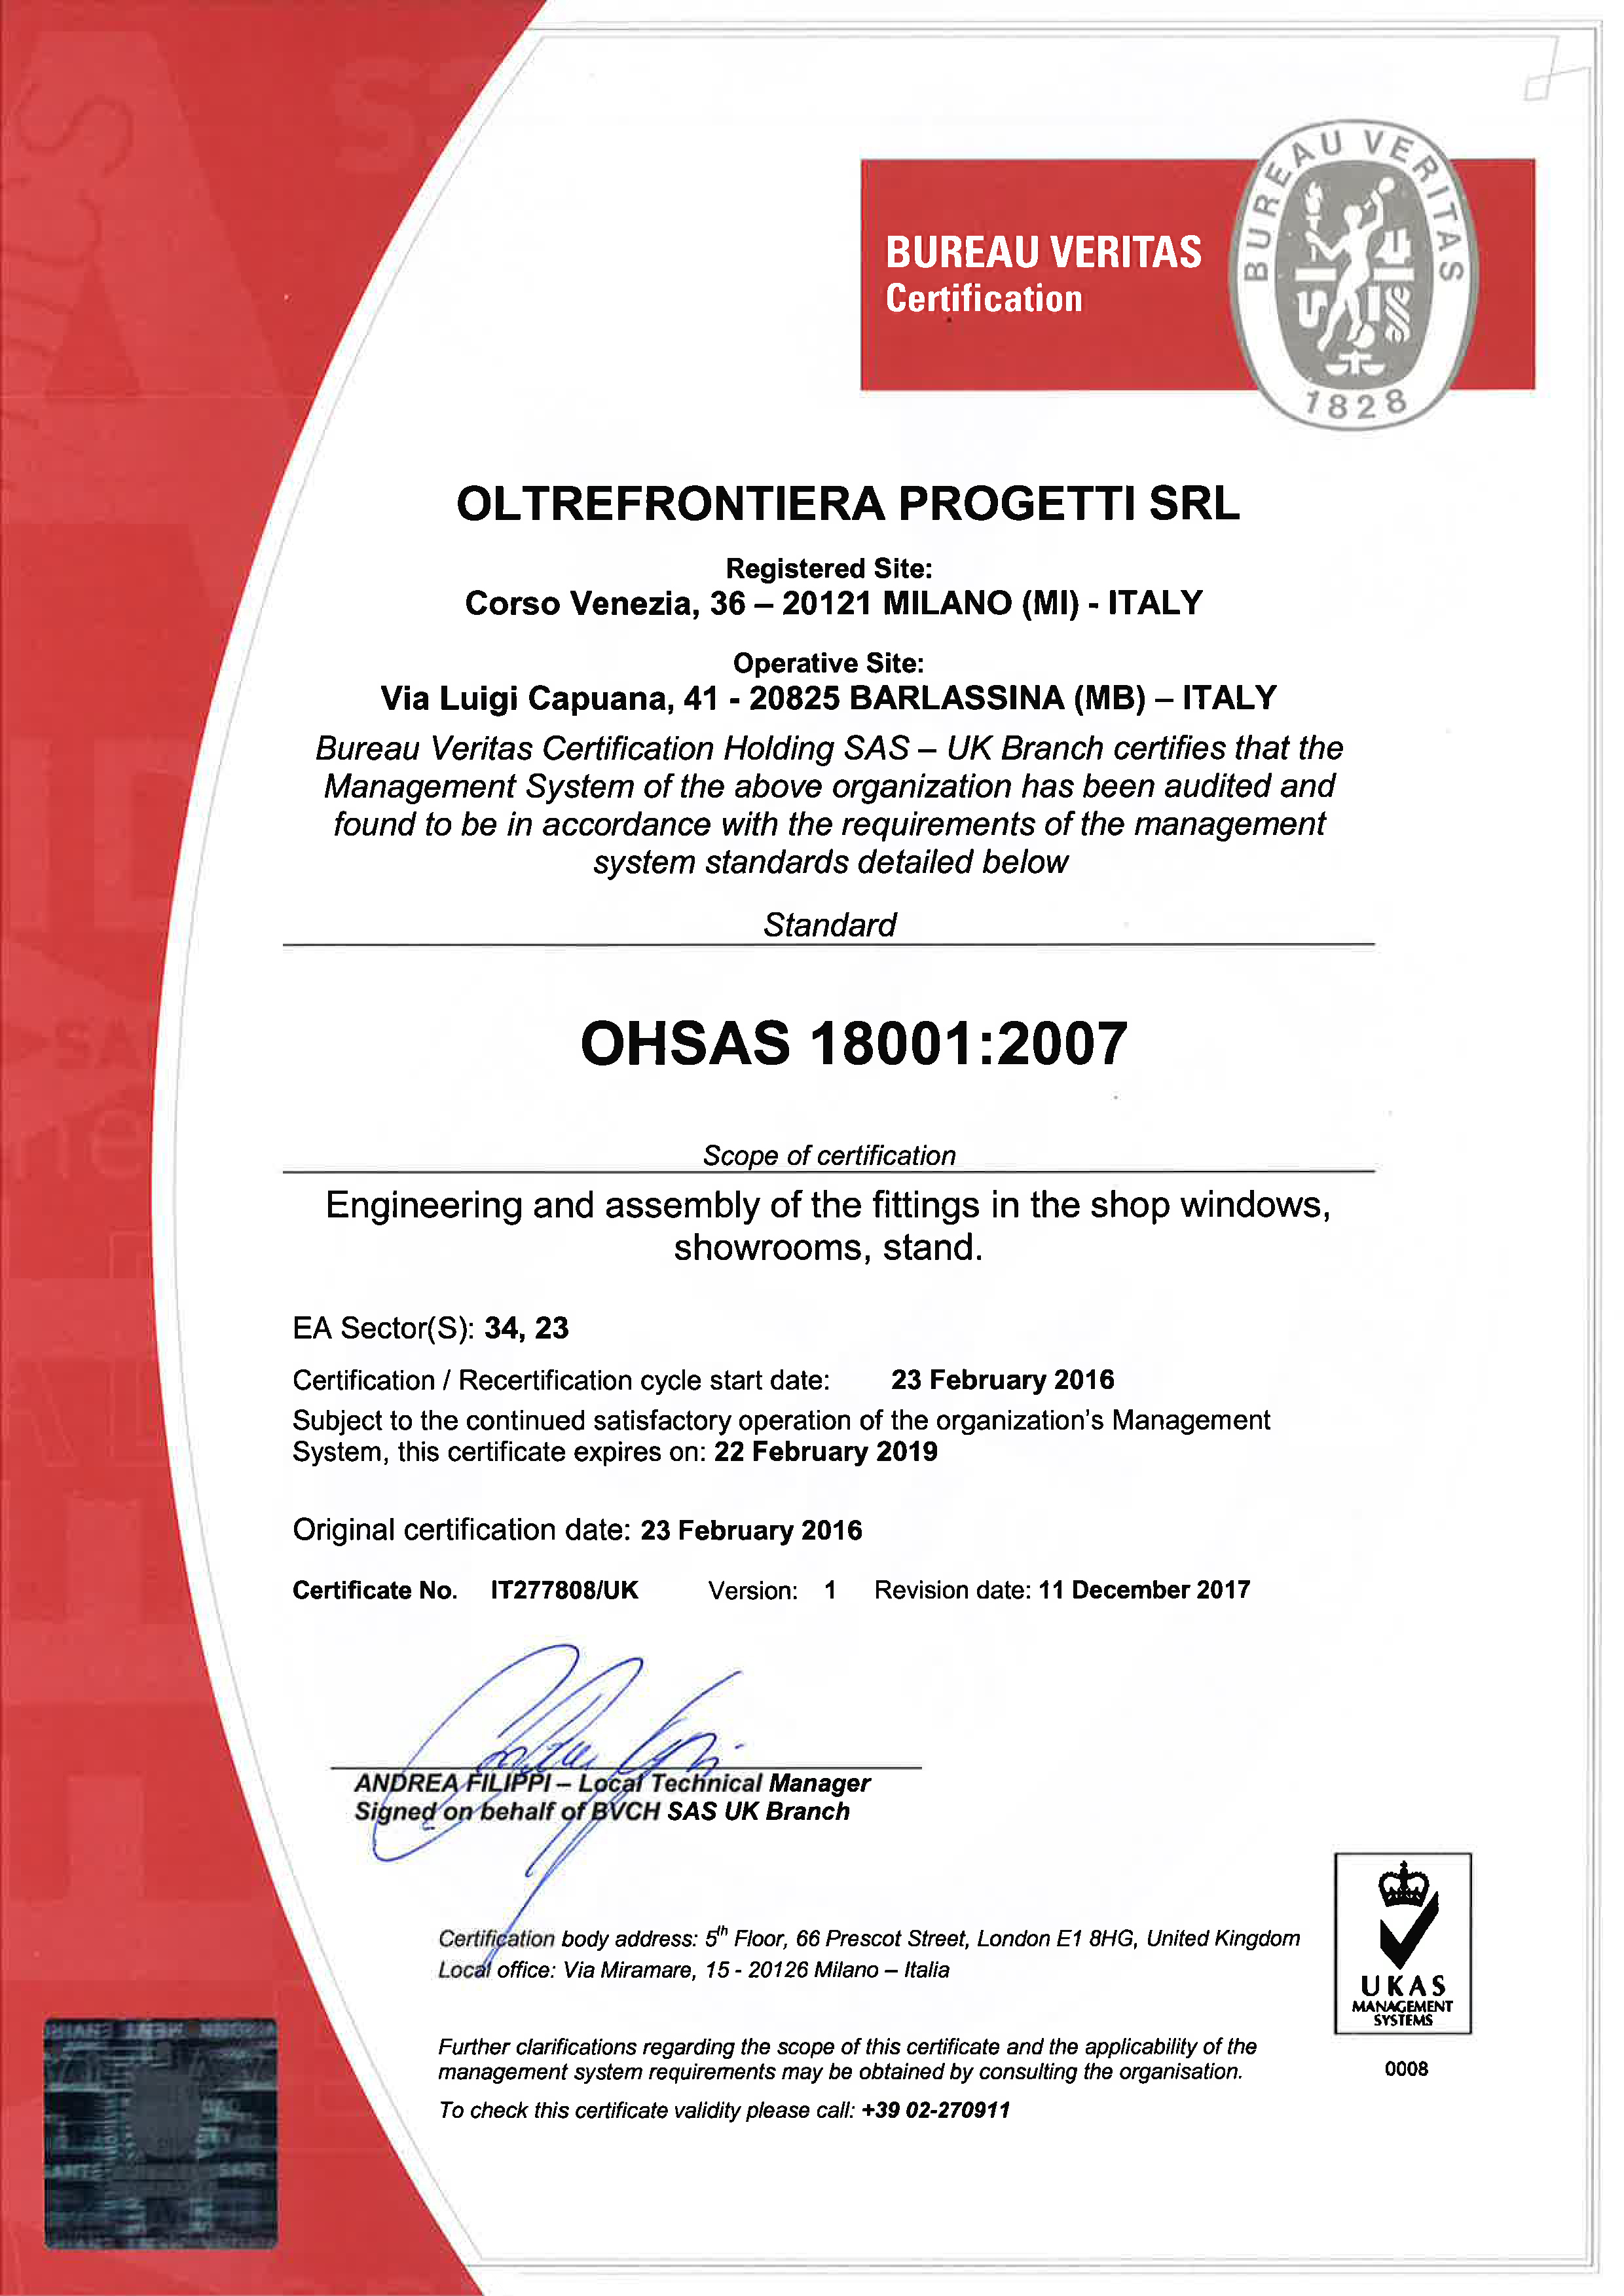 OLTREFRONTIERA PROGETTI SRL SCAN 18001 ING